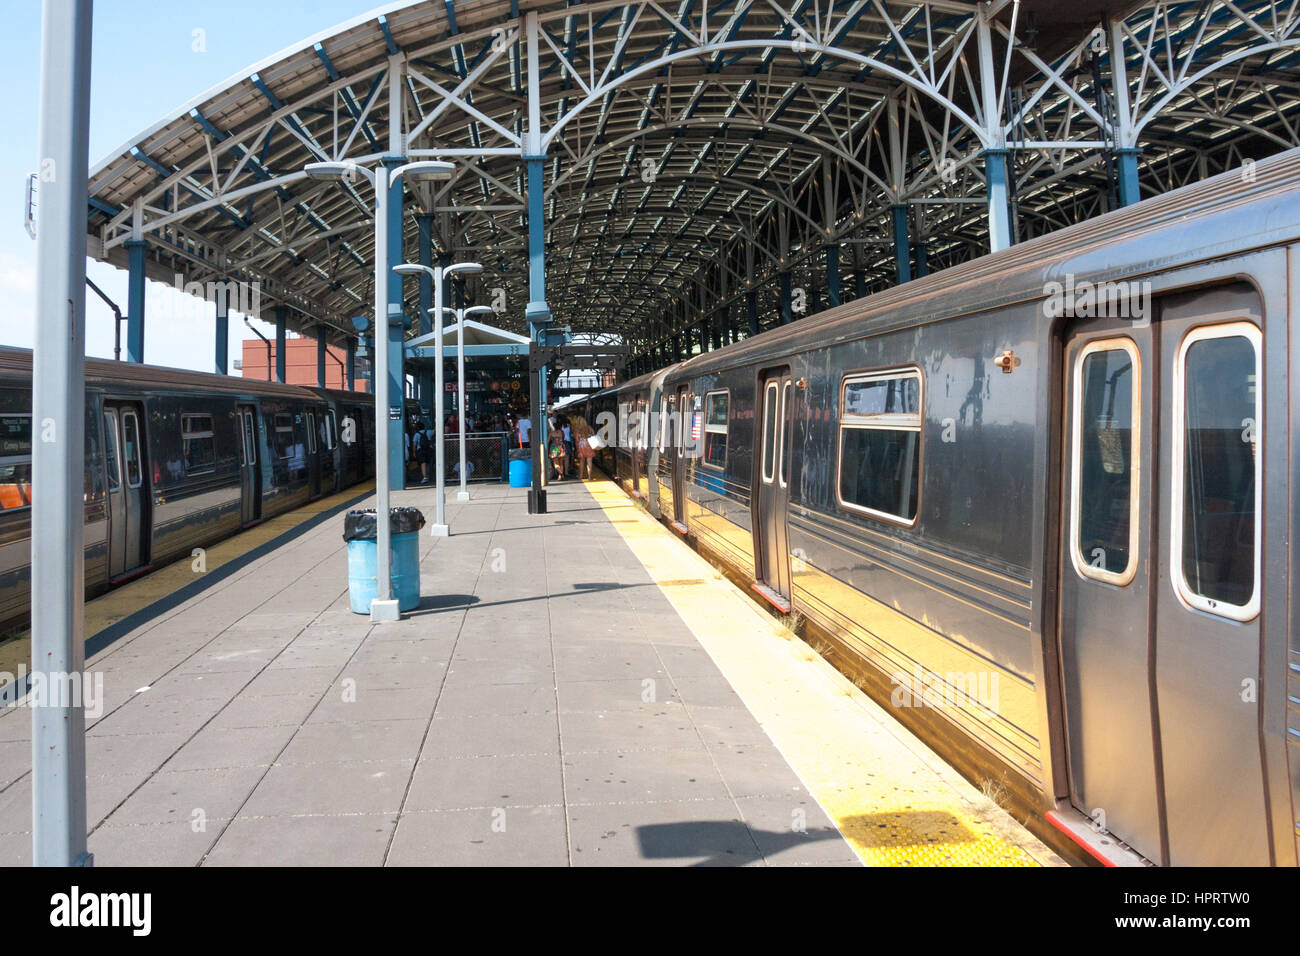 Q line train and platform on Coney Island subway station, Brooklyn, New York - Stock Image